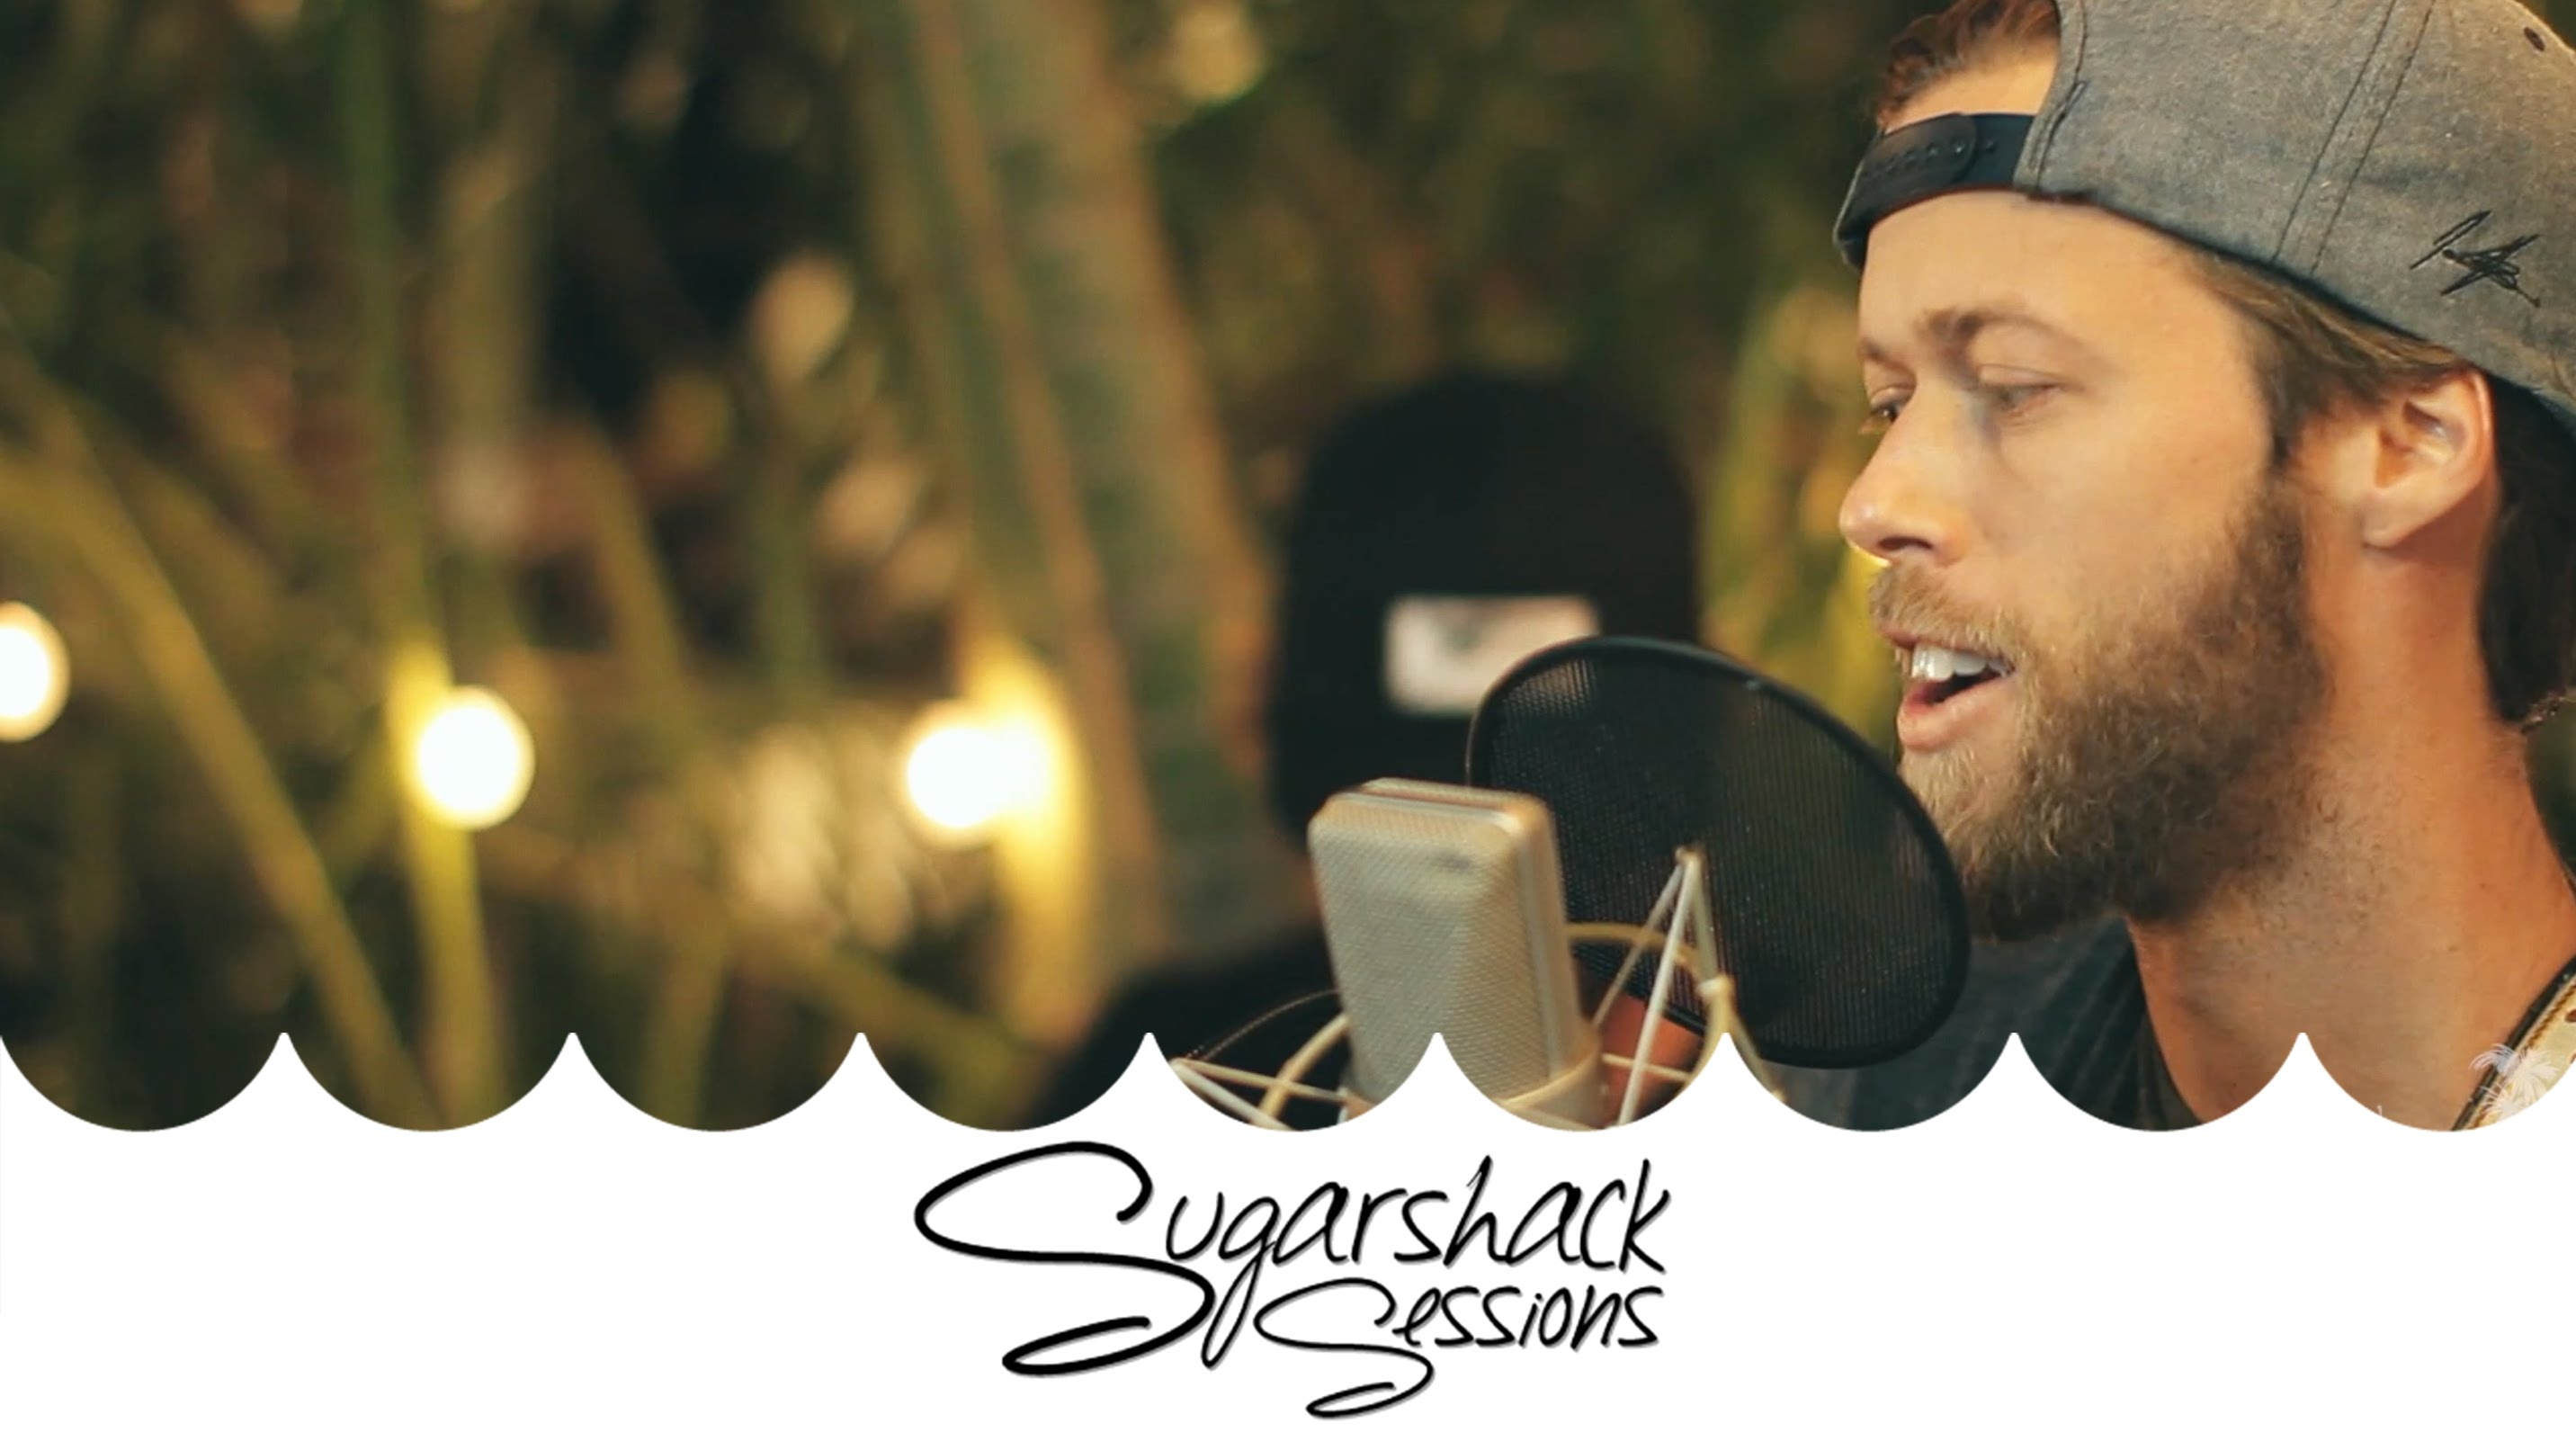 Signal Fire - Let's Move Slow @ Sugarshack Sessions [1/16/2016]